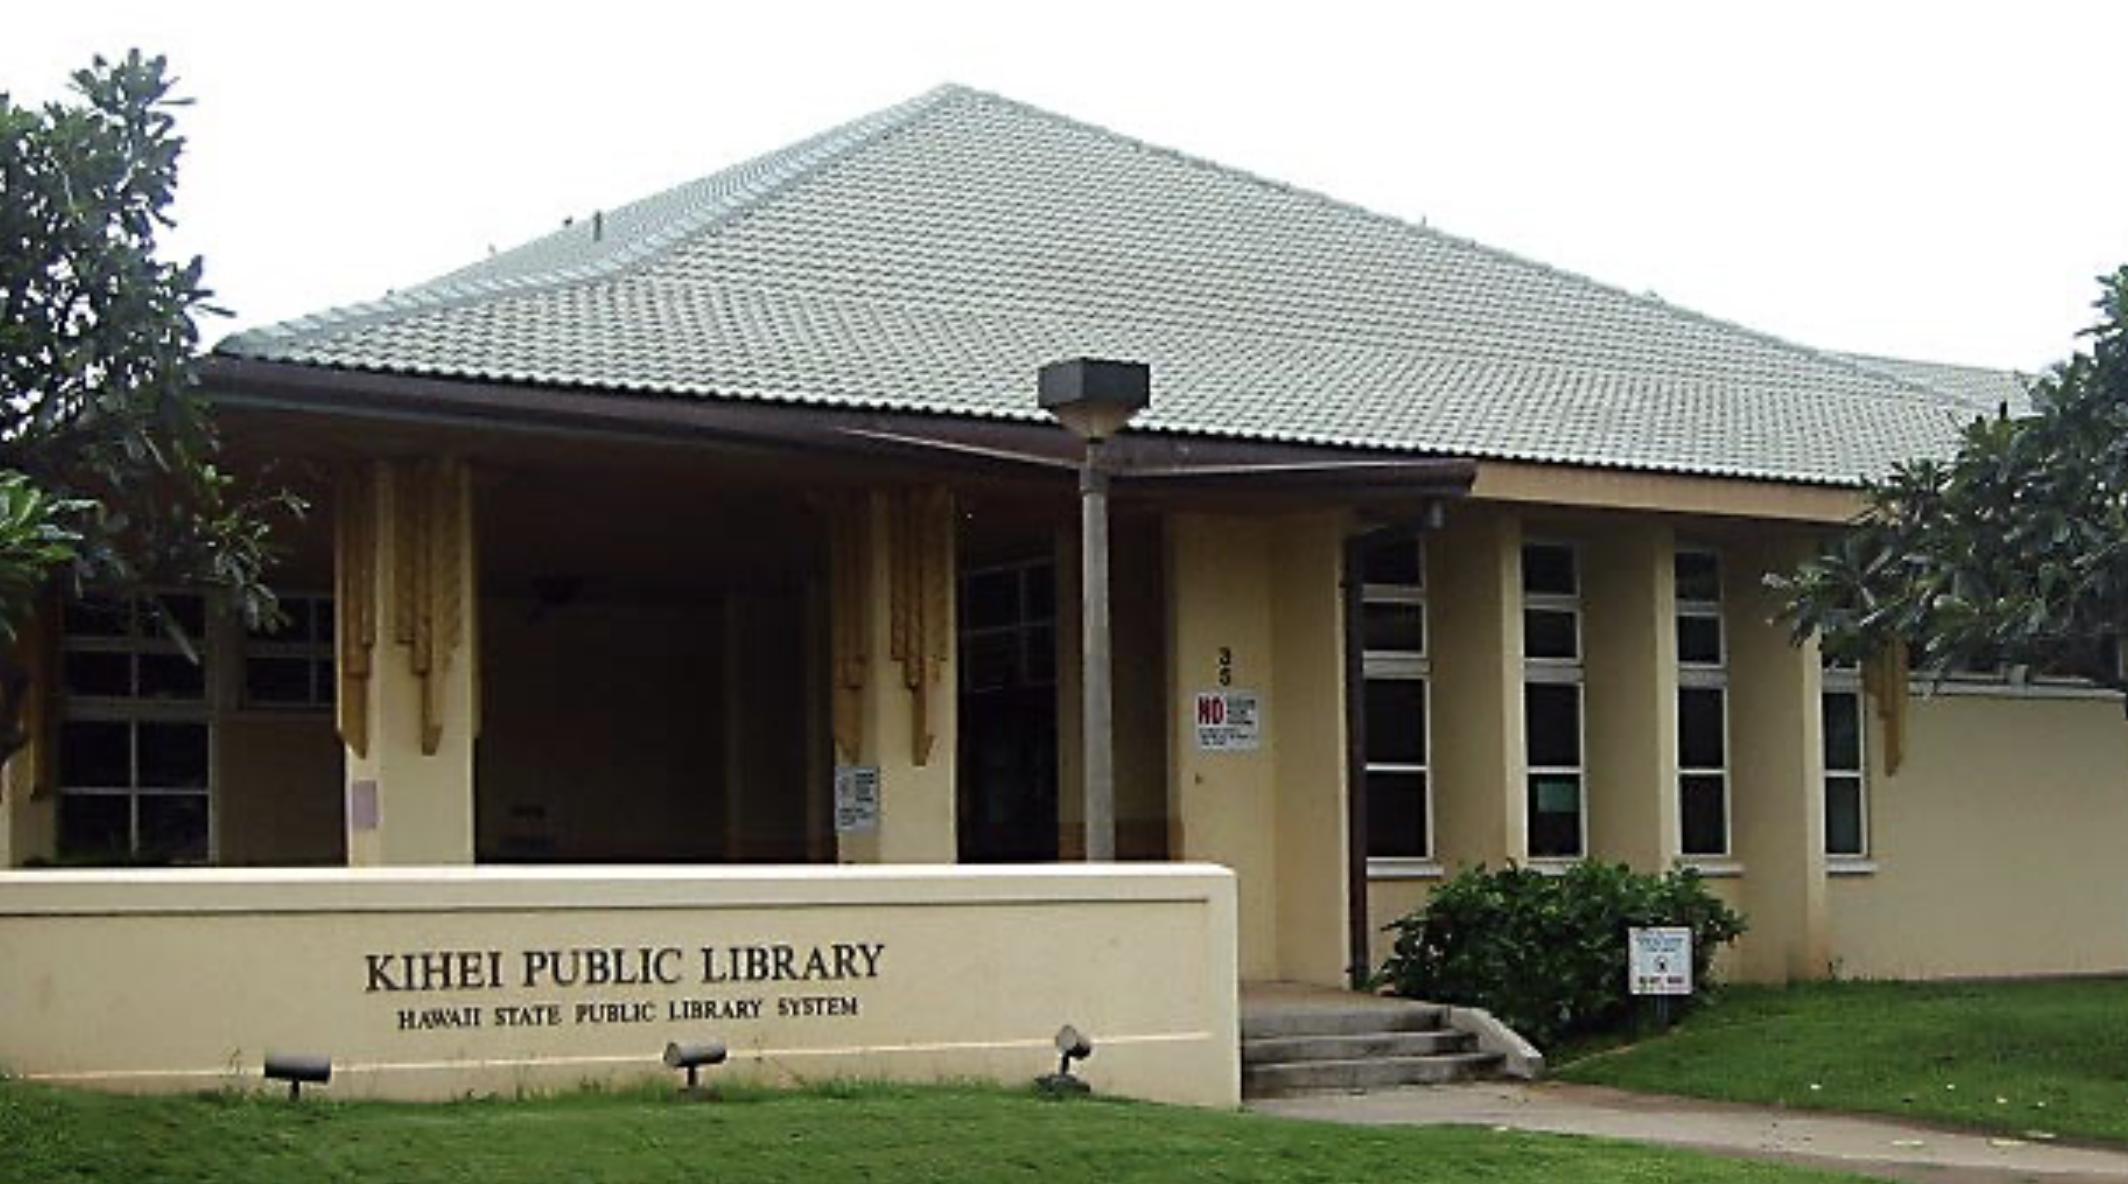 Hawai'i State Public Libraries Temporarily Suspend Computer Time Amid COVID-19 Concerns